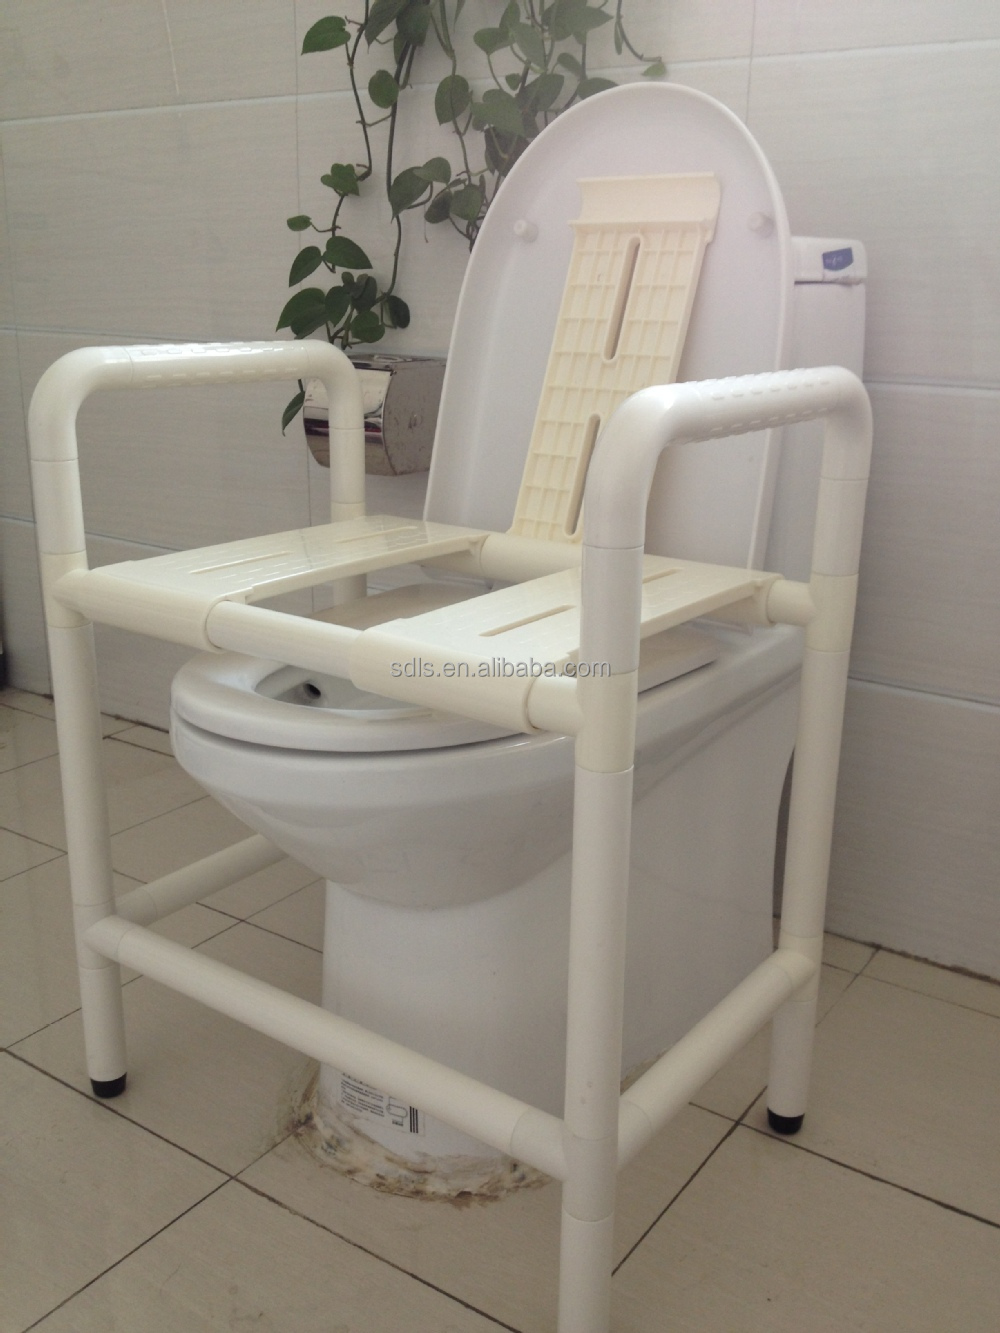 Handicap Bathroom Chair, Handicap Bathroom Chair Suppliers and ...